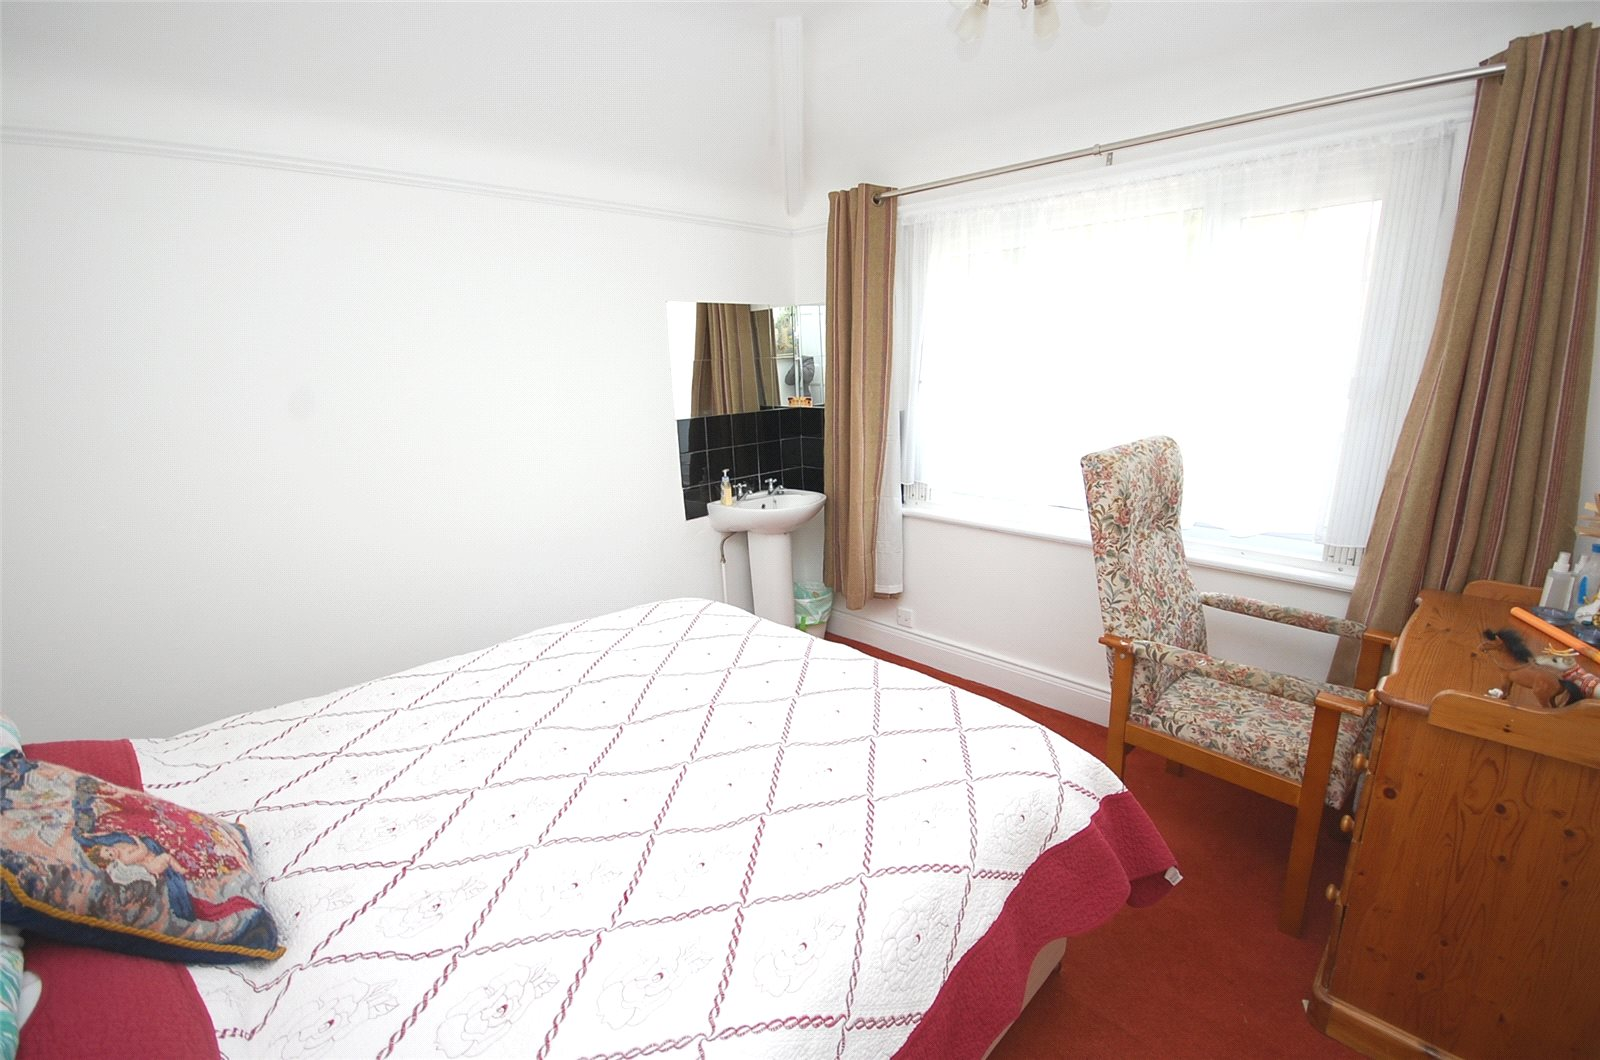 Ellis Amp Co Finchley 5 Bedroom House Sstc In Tillingbourne